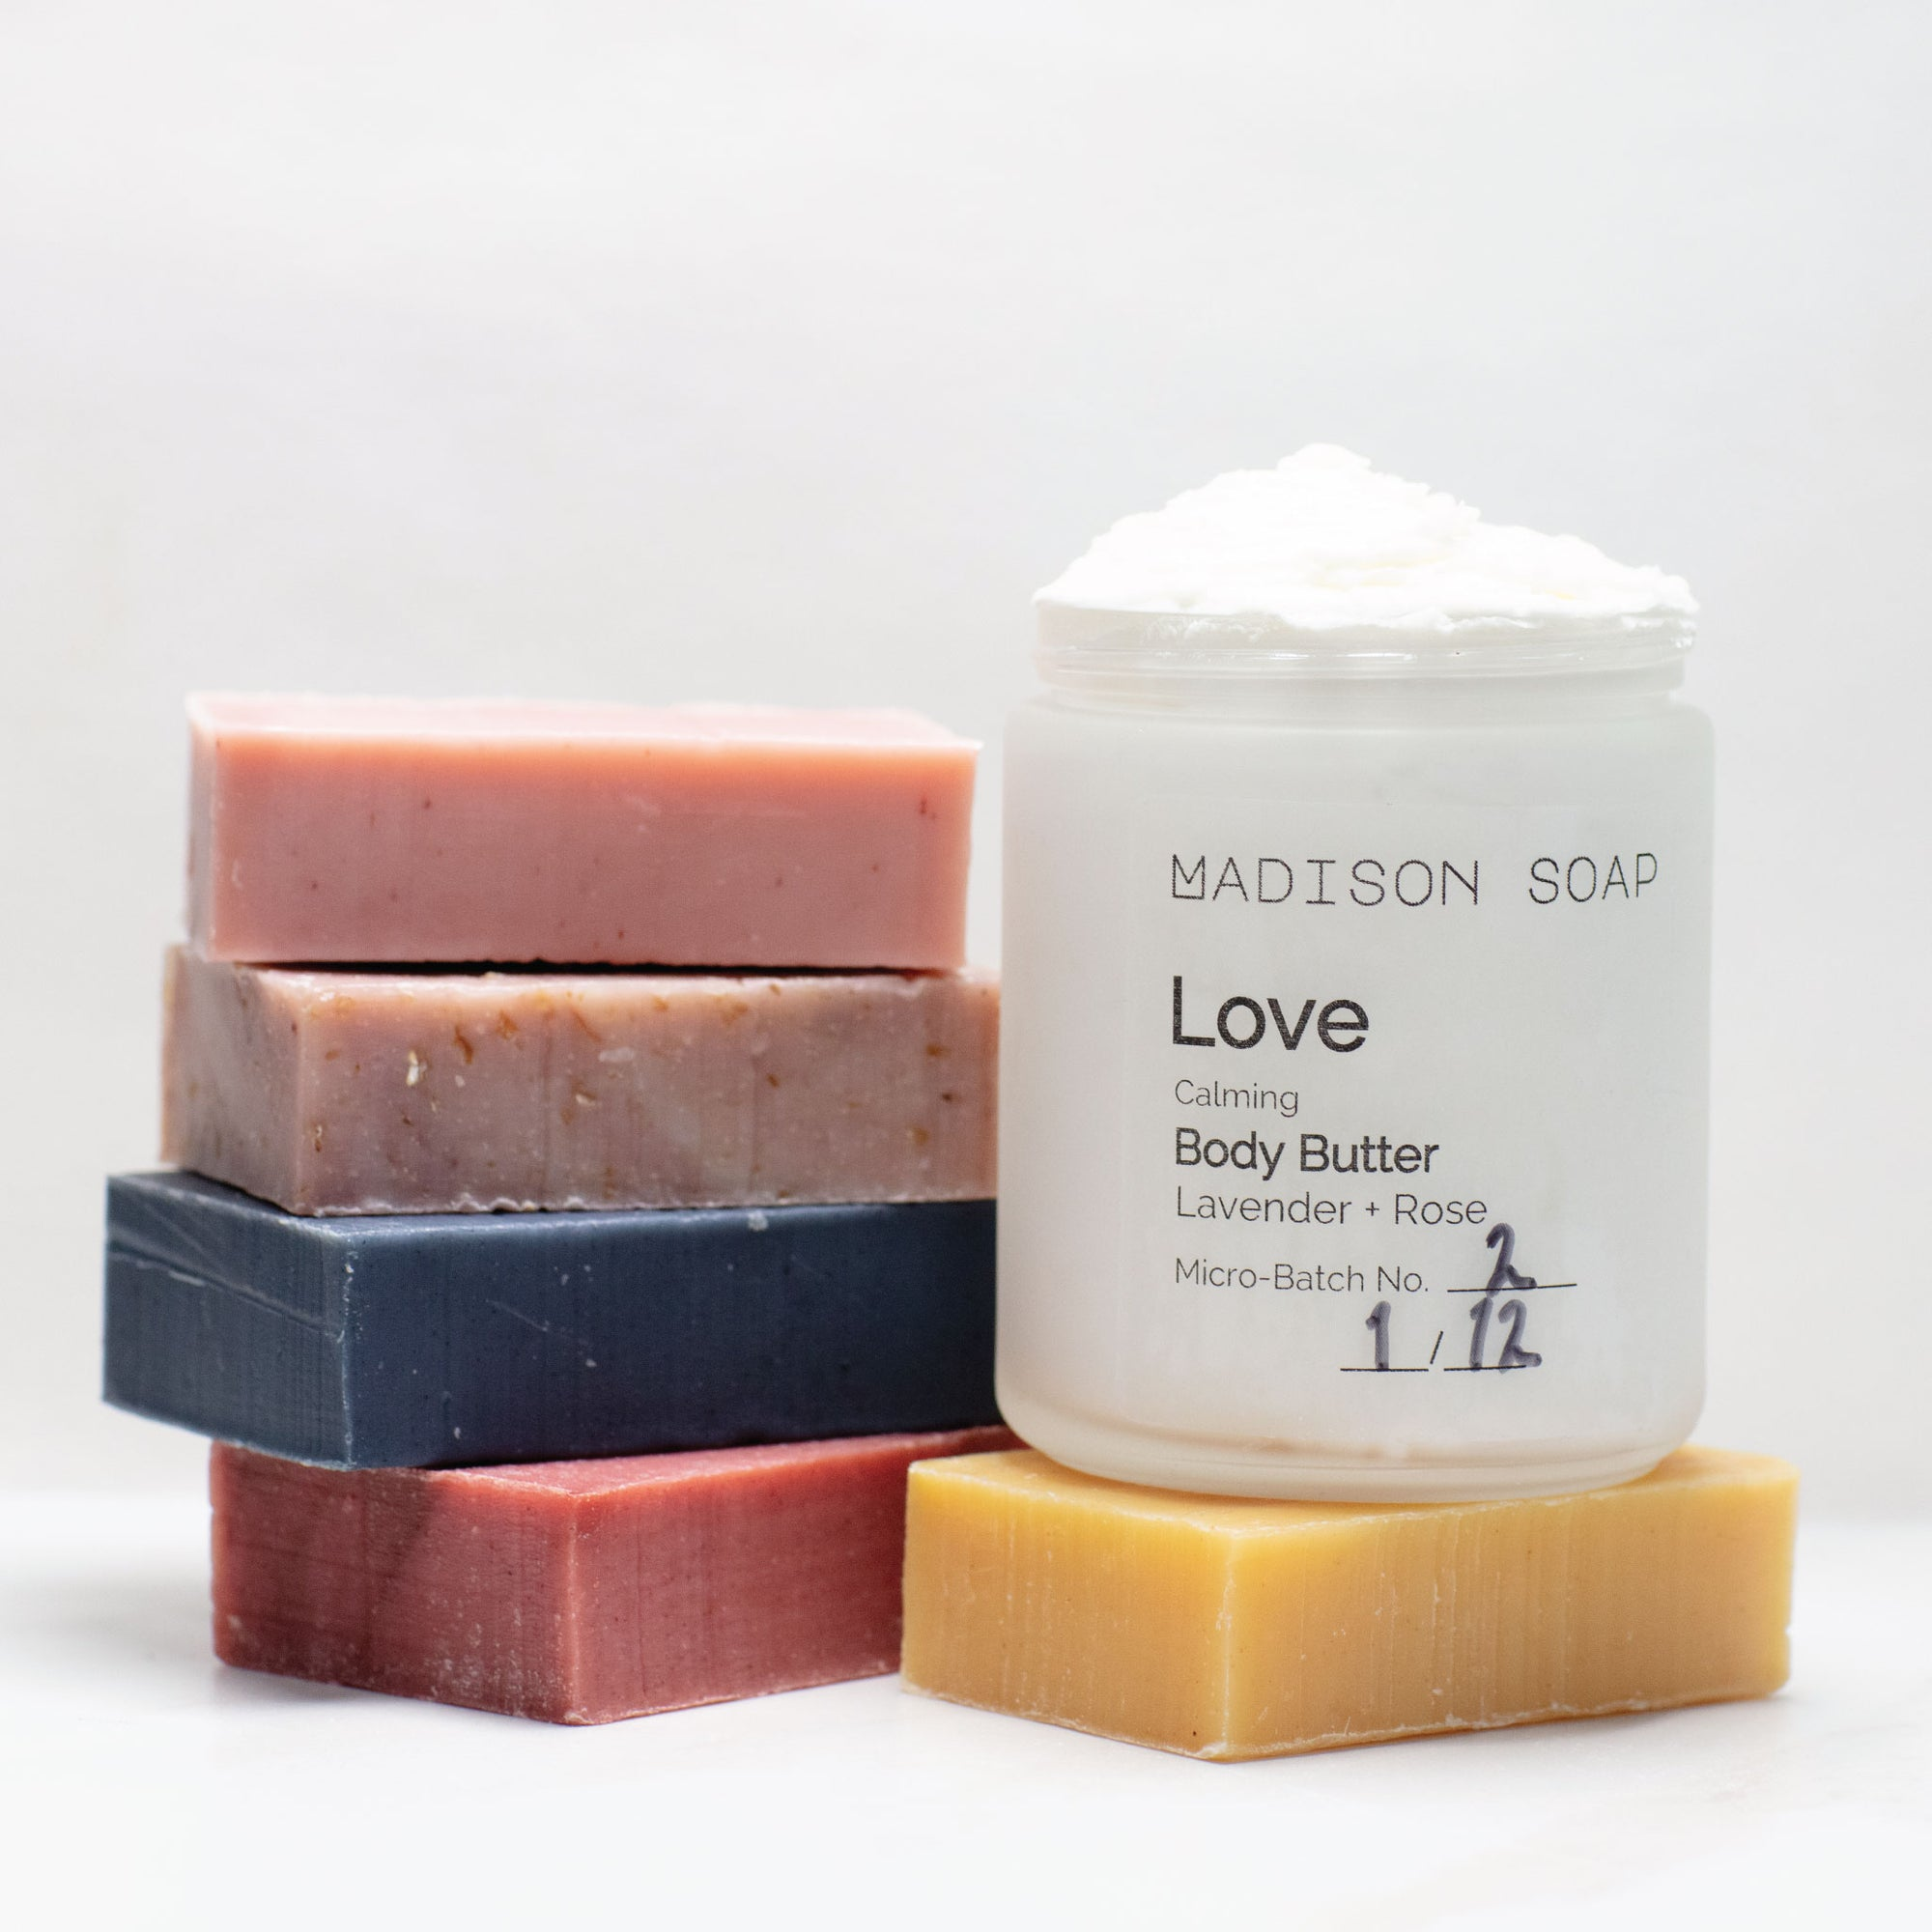 Body Butter, 4 oz Body Butter by Madison Soap Company from Madison Soap Company